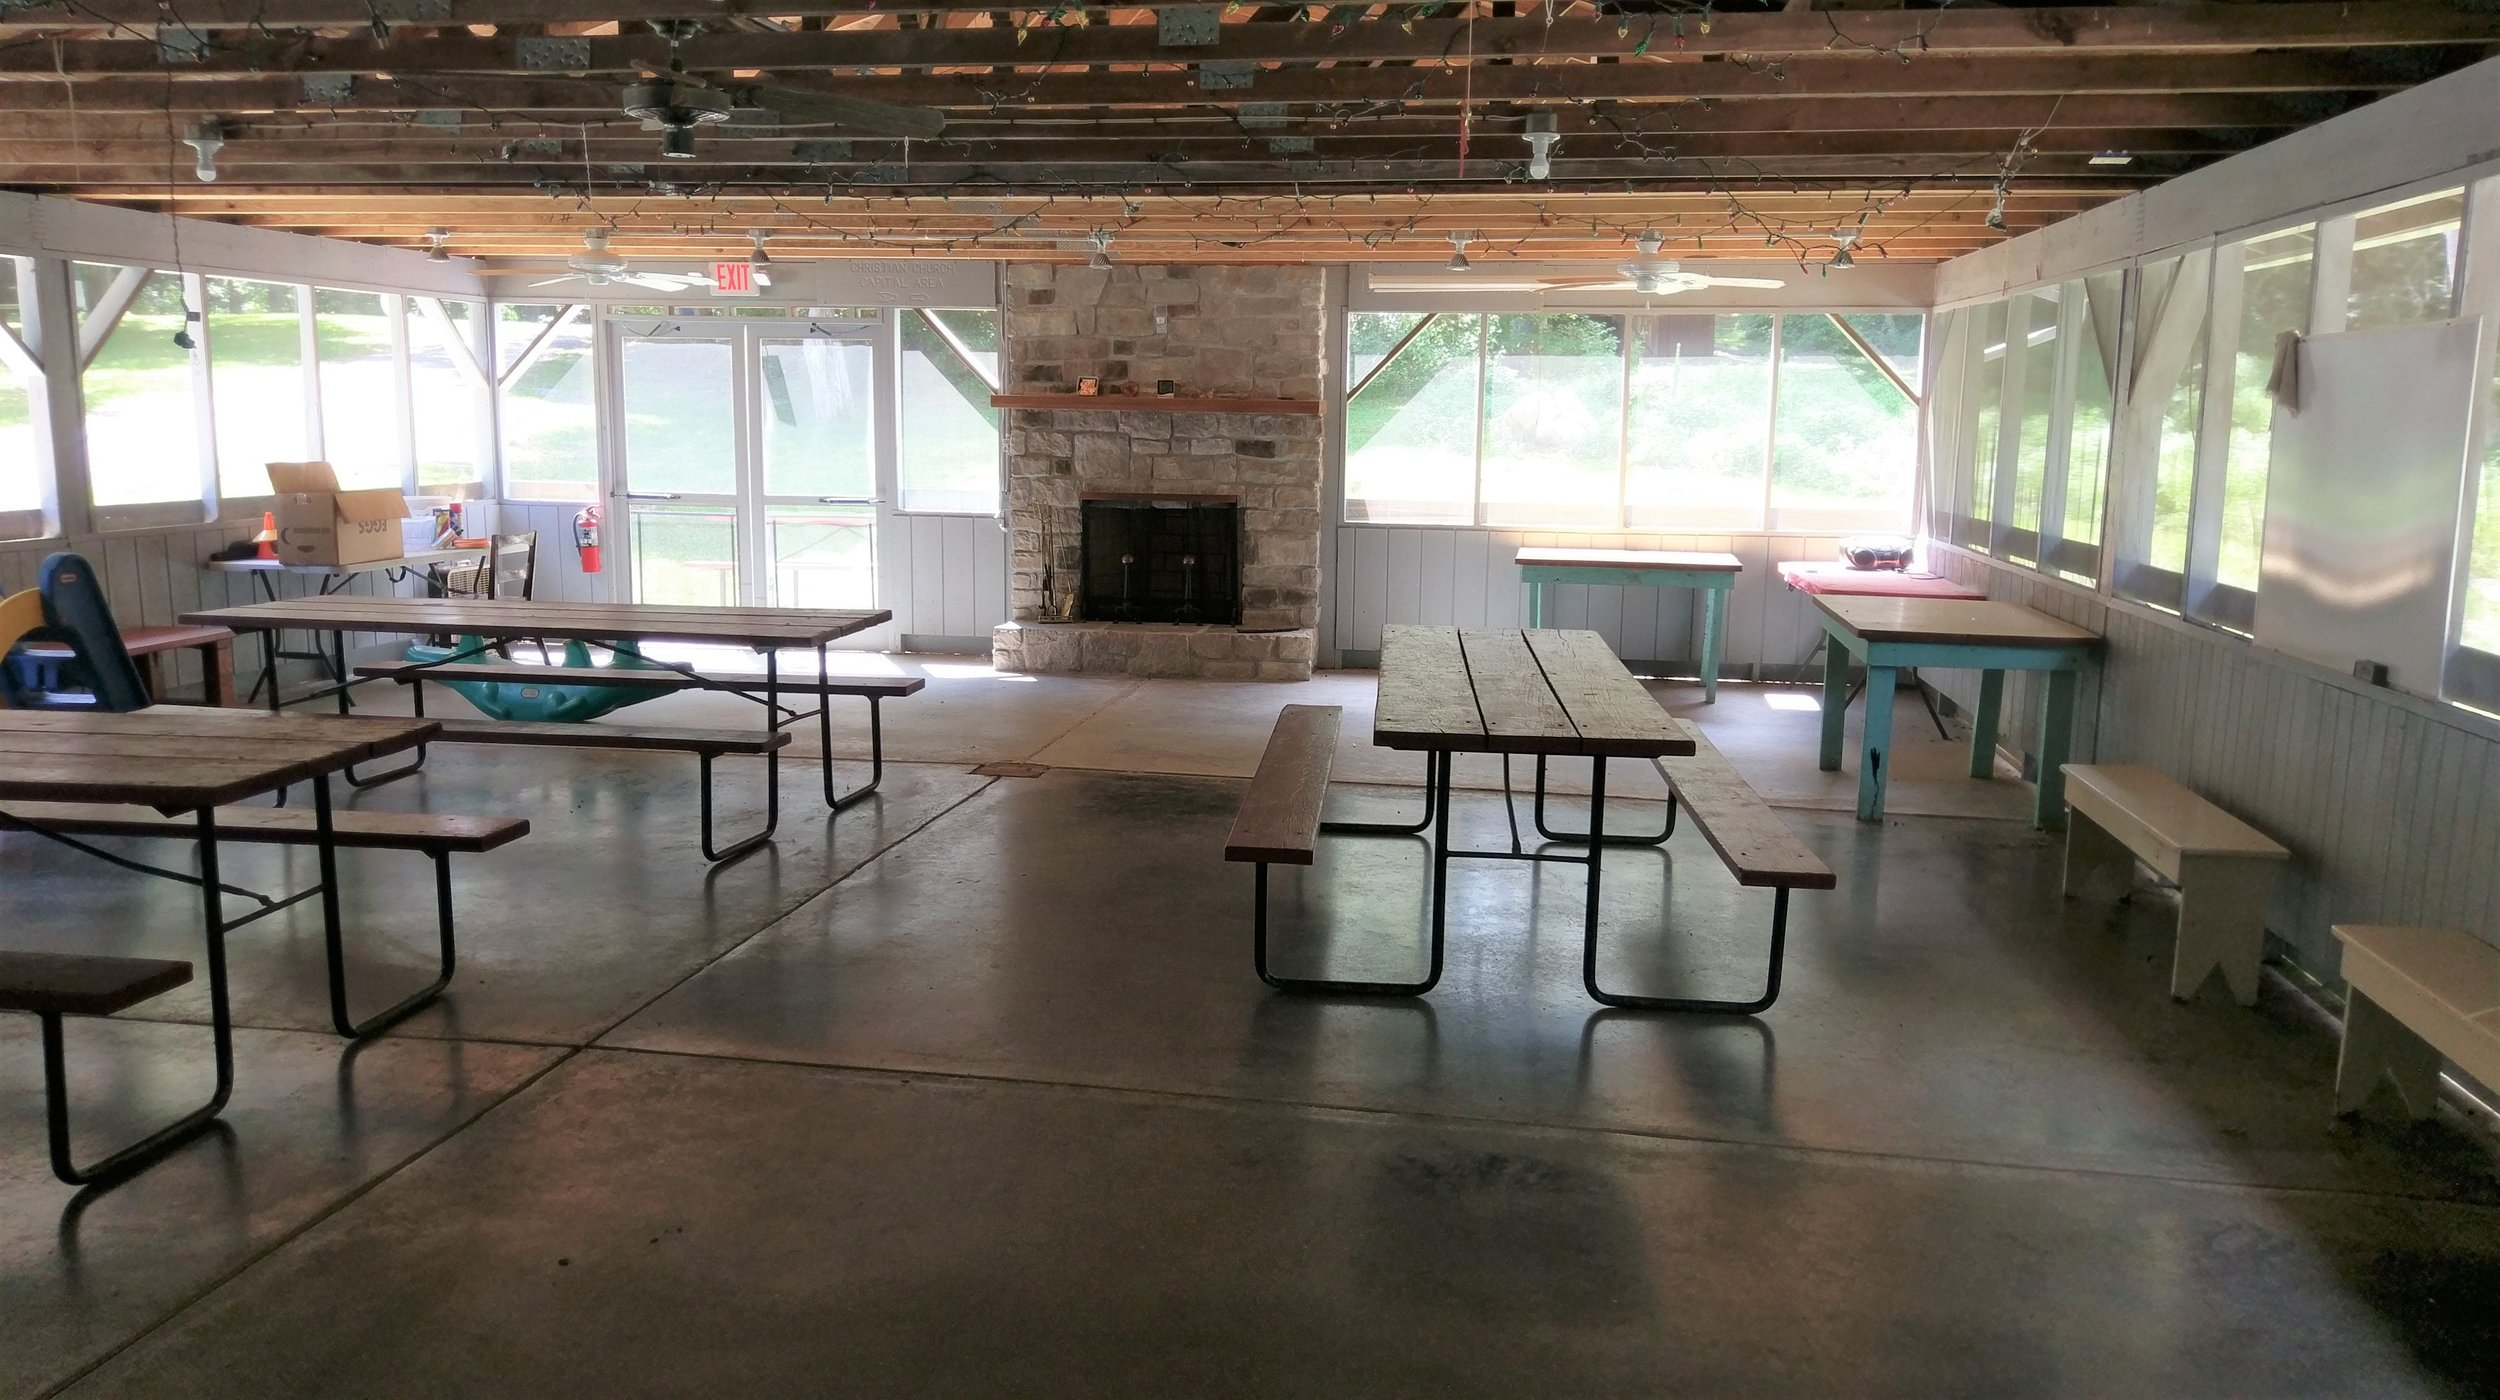 2017 Exended Dining Hall and New Fire Place.jpg